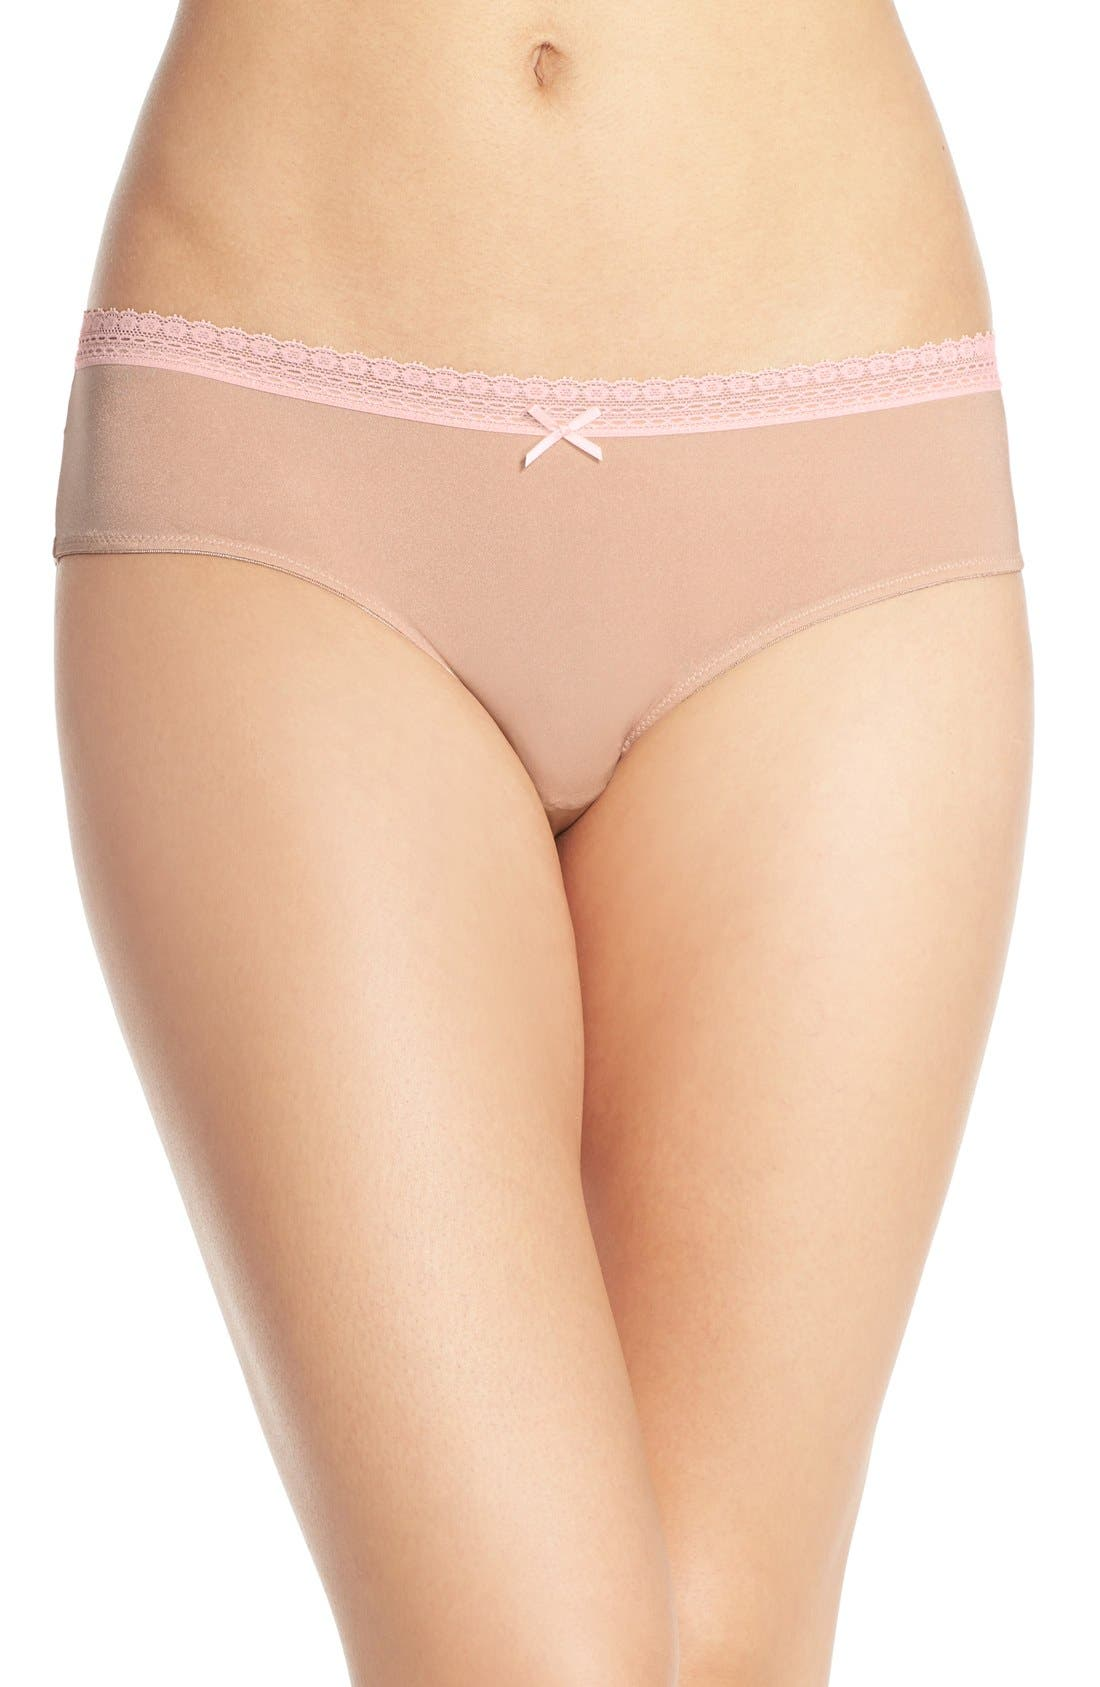 Alternate Image 1 Selected - Betsey Johnson 'Forever Perfect - Cutie' Hipster Briefs (3 for $33)